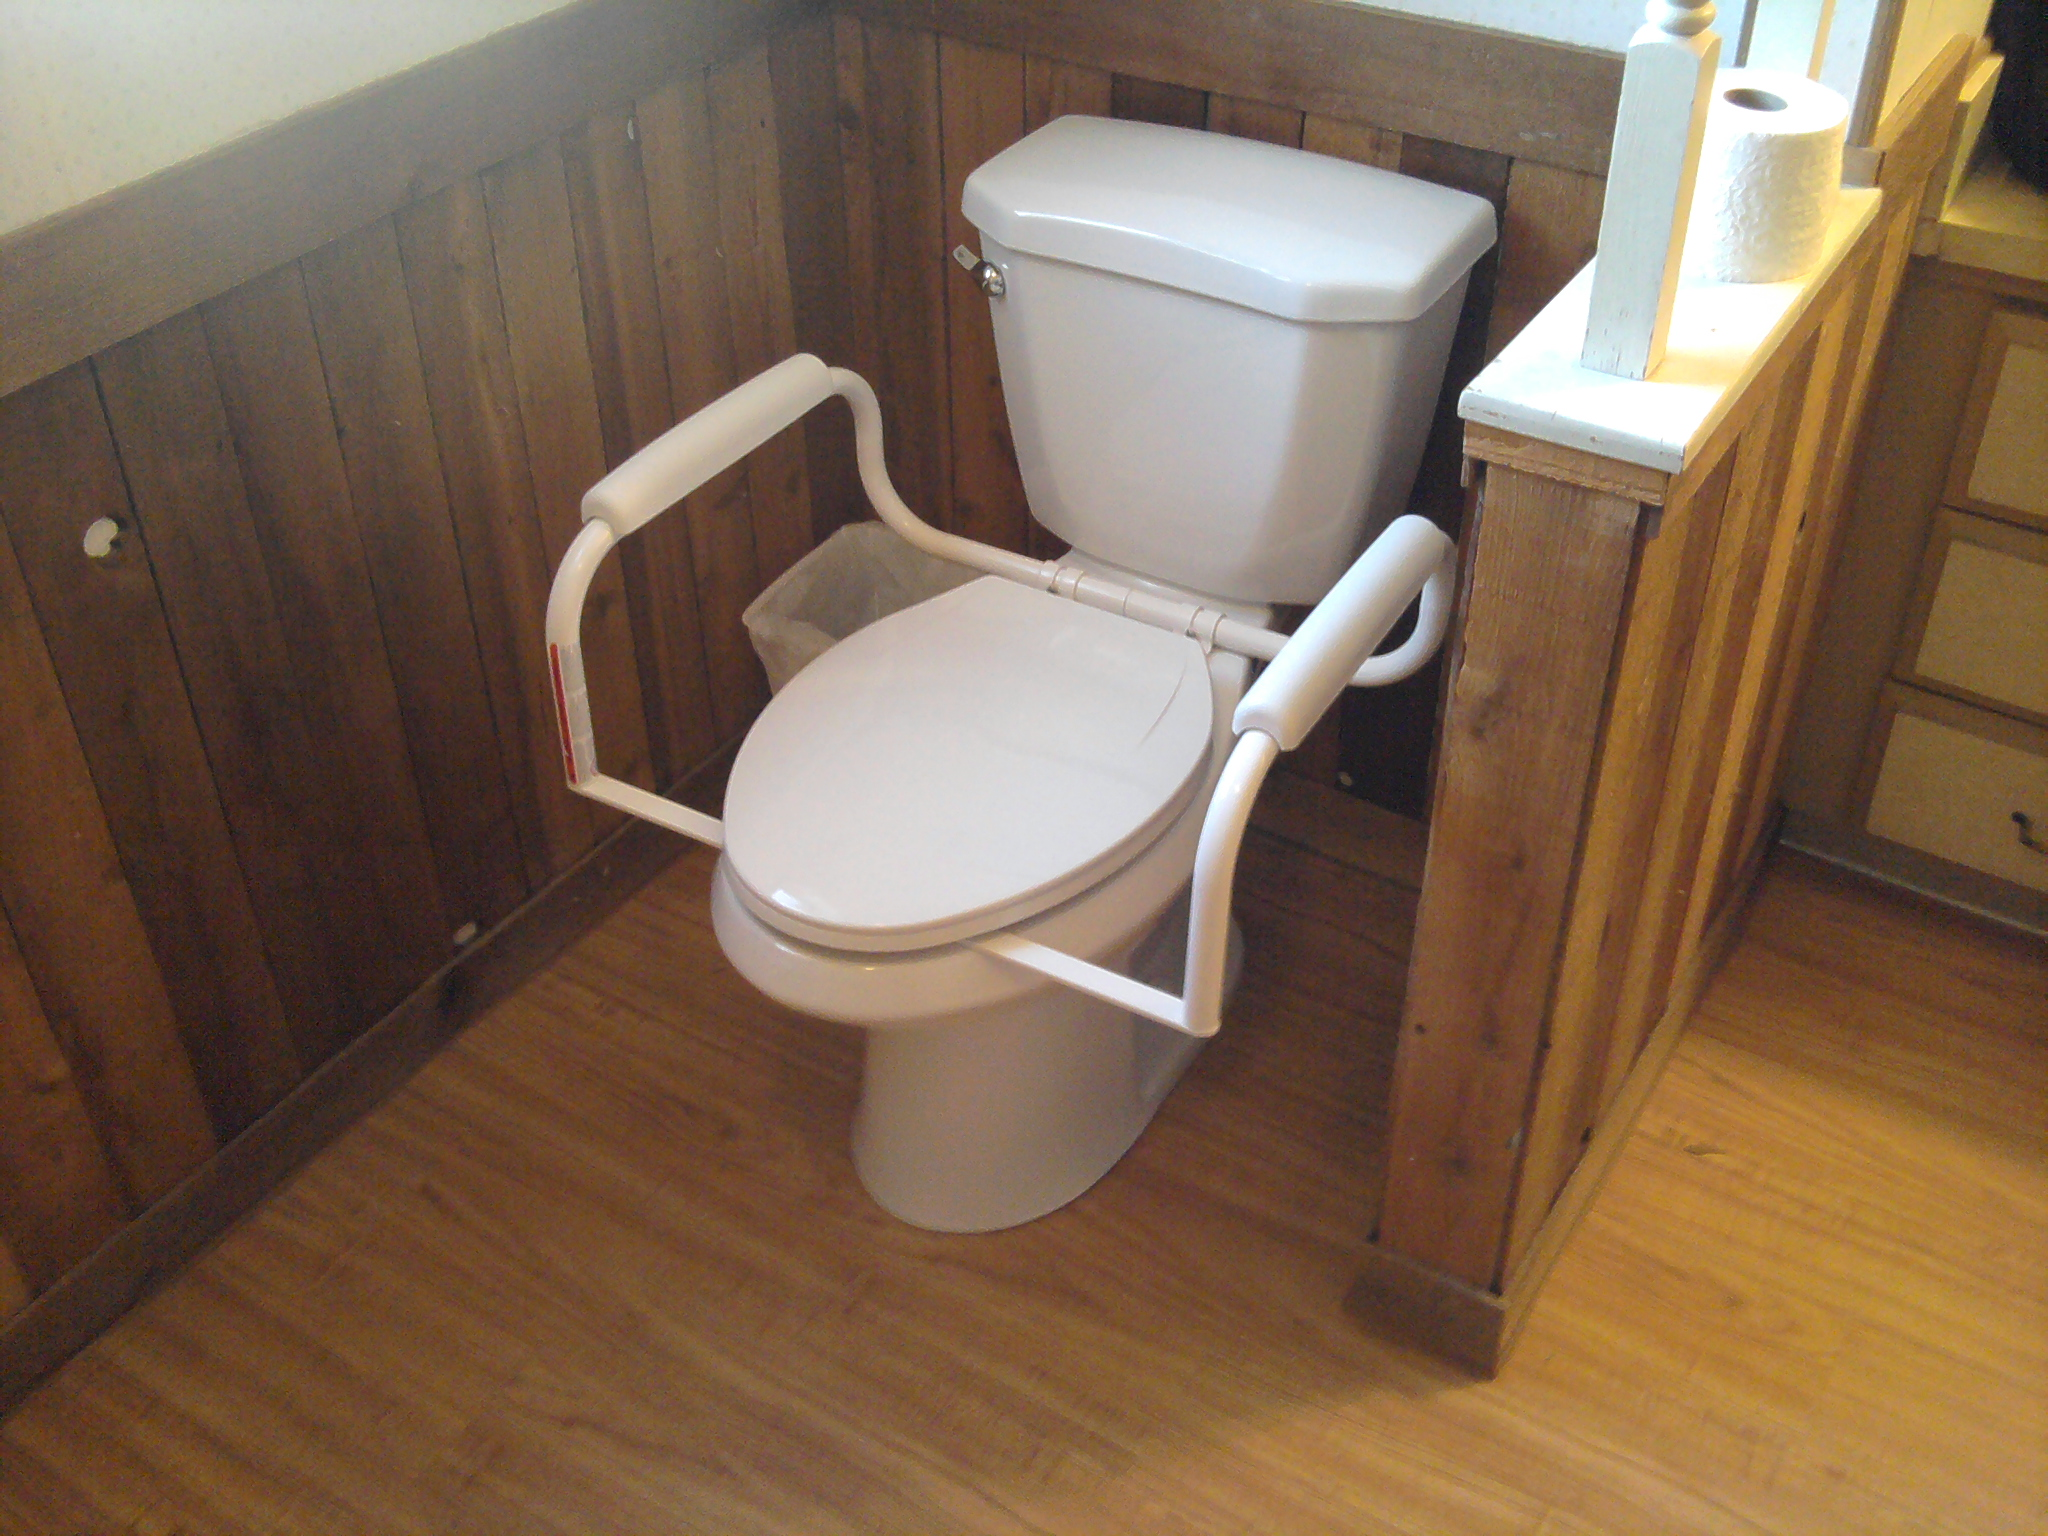 Handicap toilet - Handicap bars for bathroom toilet ...